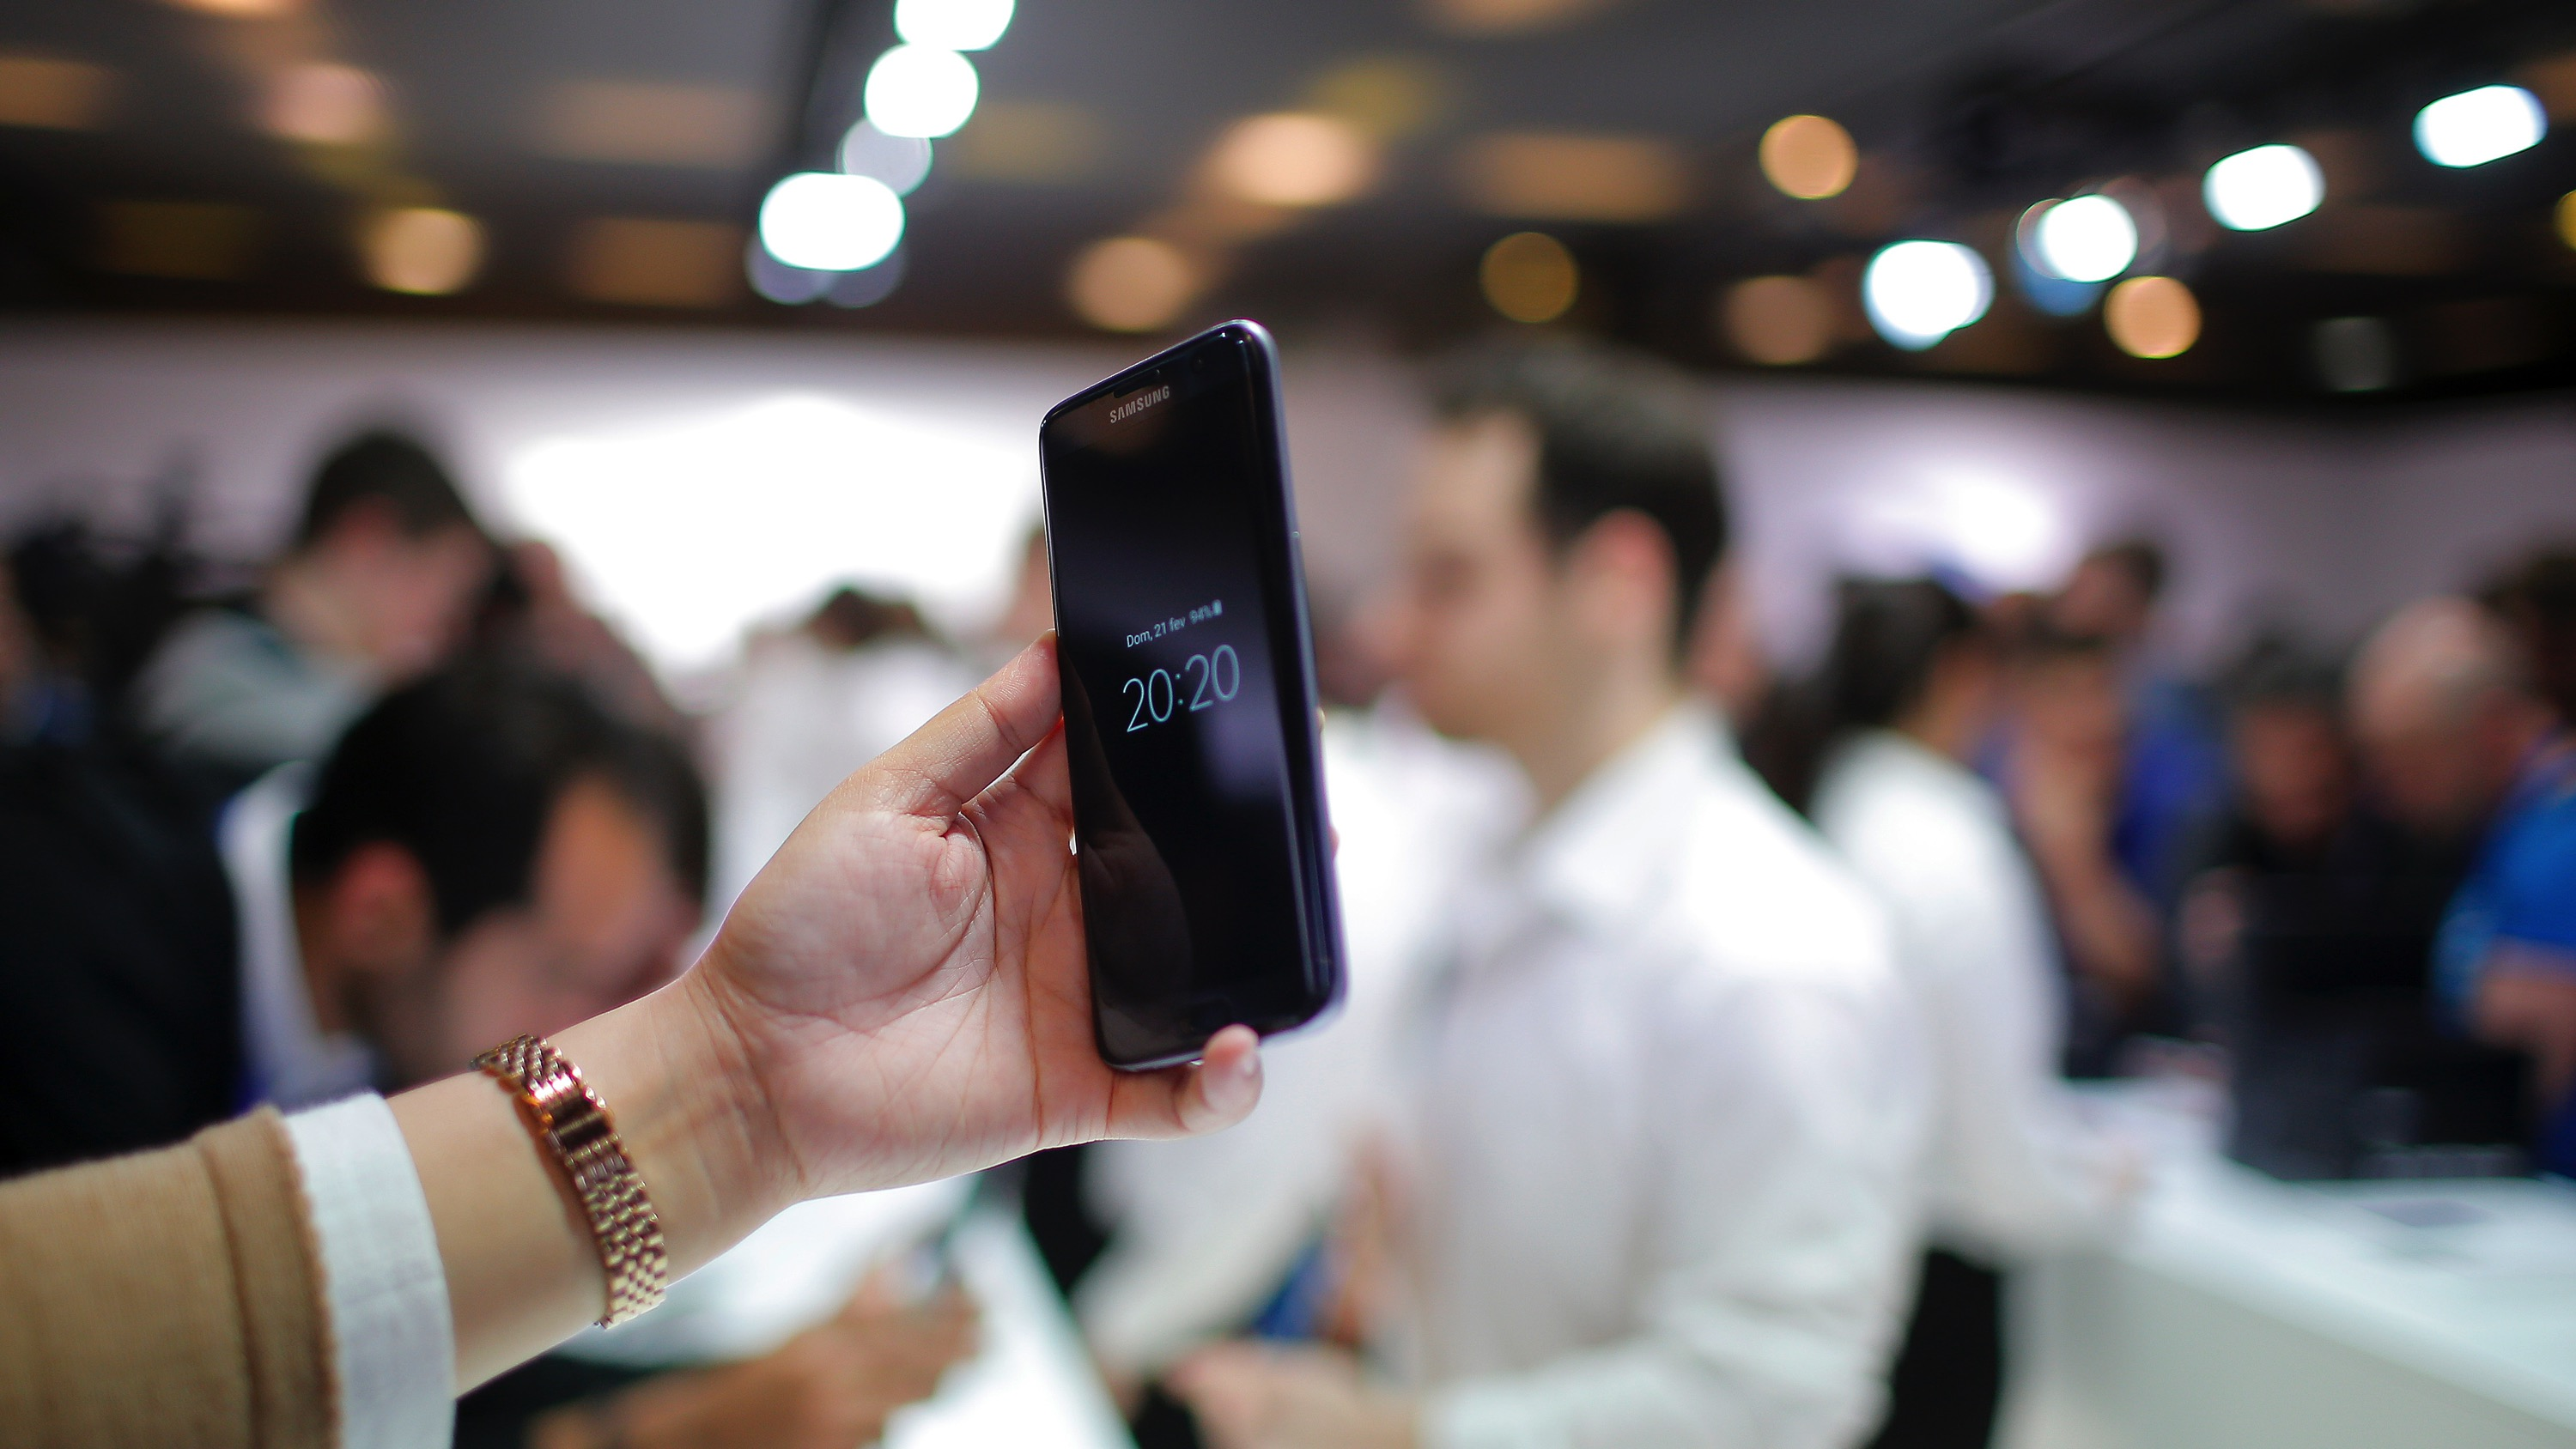 A woman holds the Samsung Galaxy S7 during the Samsung Galaxy Unpacked 2016 event on the eve of this week's Mobile World Congress wireless show, in Barcelona, Spain, Sunday, Feb. 21, 2016. (AP Photo/Manu Fernadez)